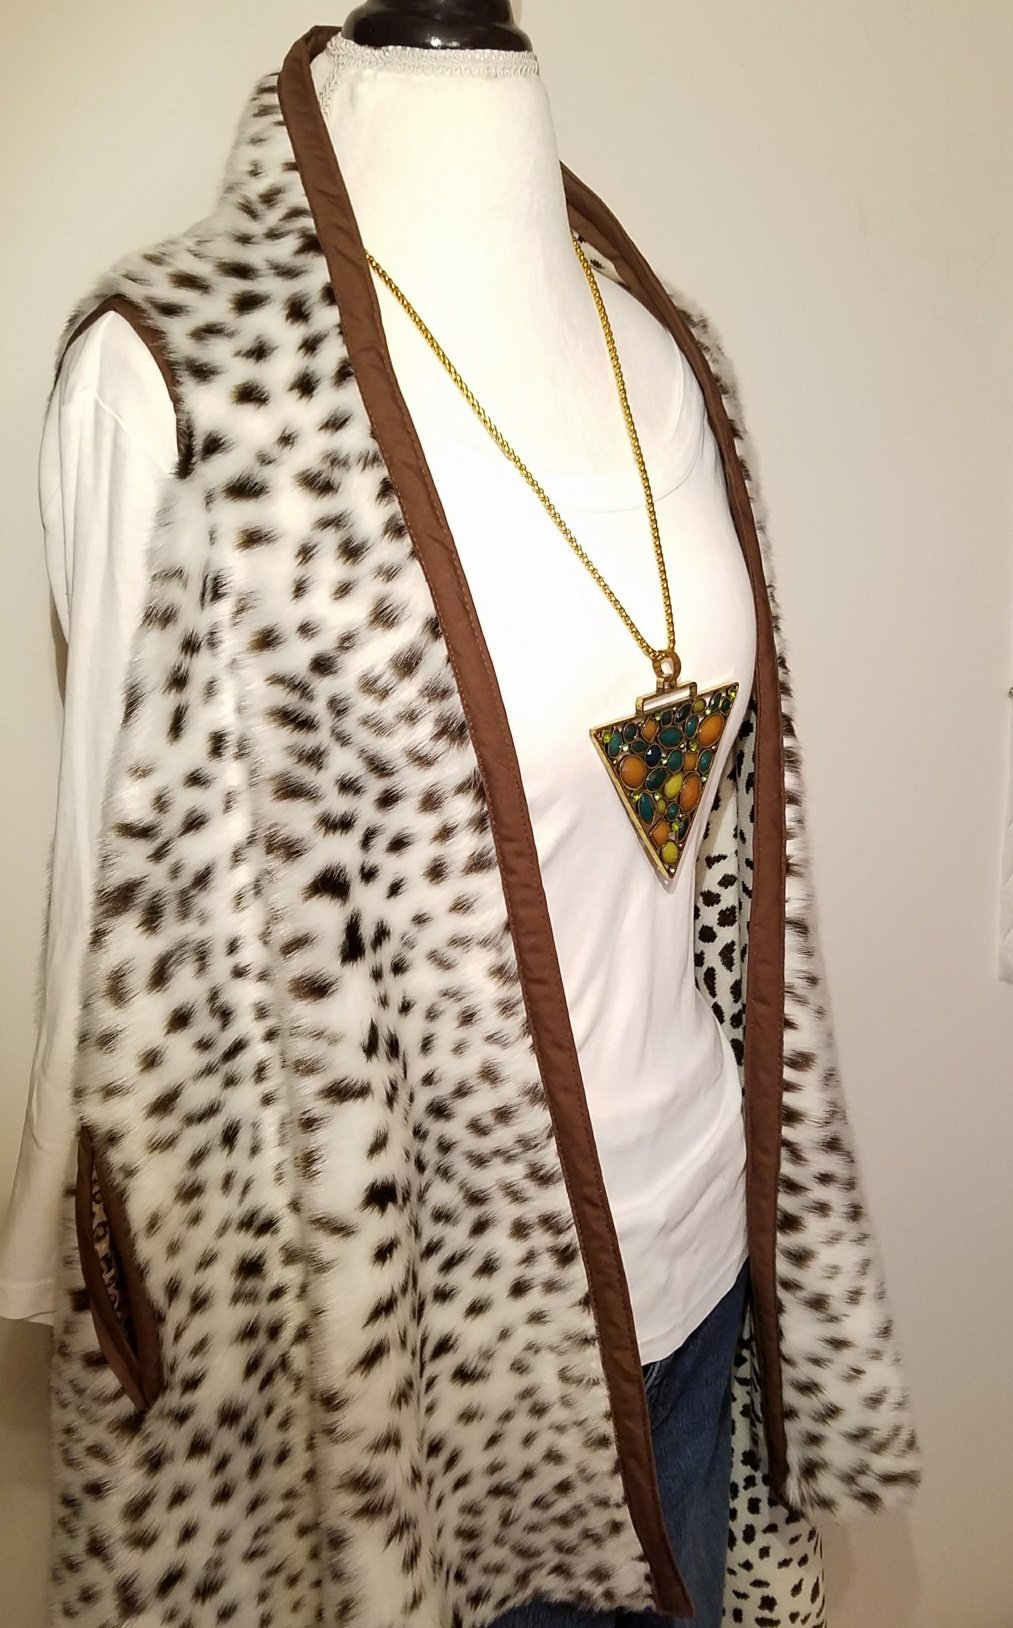 Faux Fur Long Vest HANDMADE IN TEXAS, USA